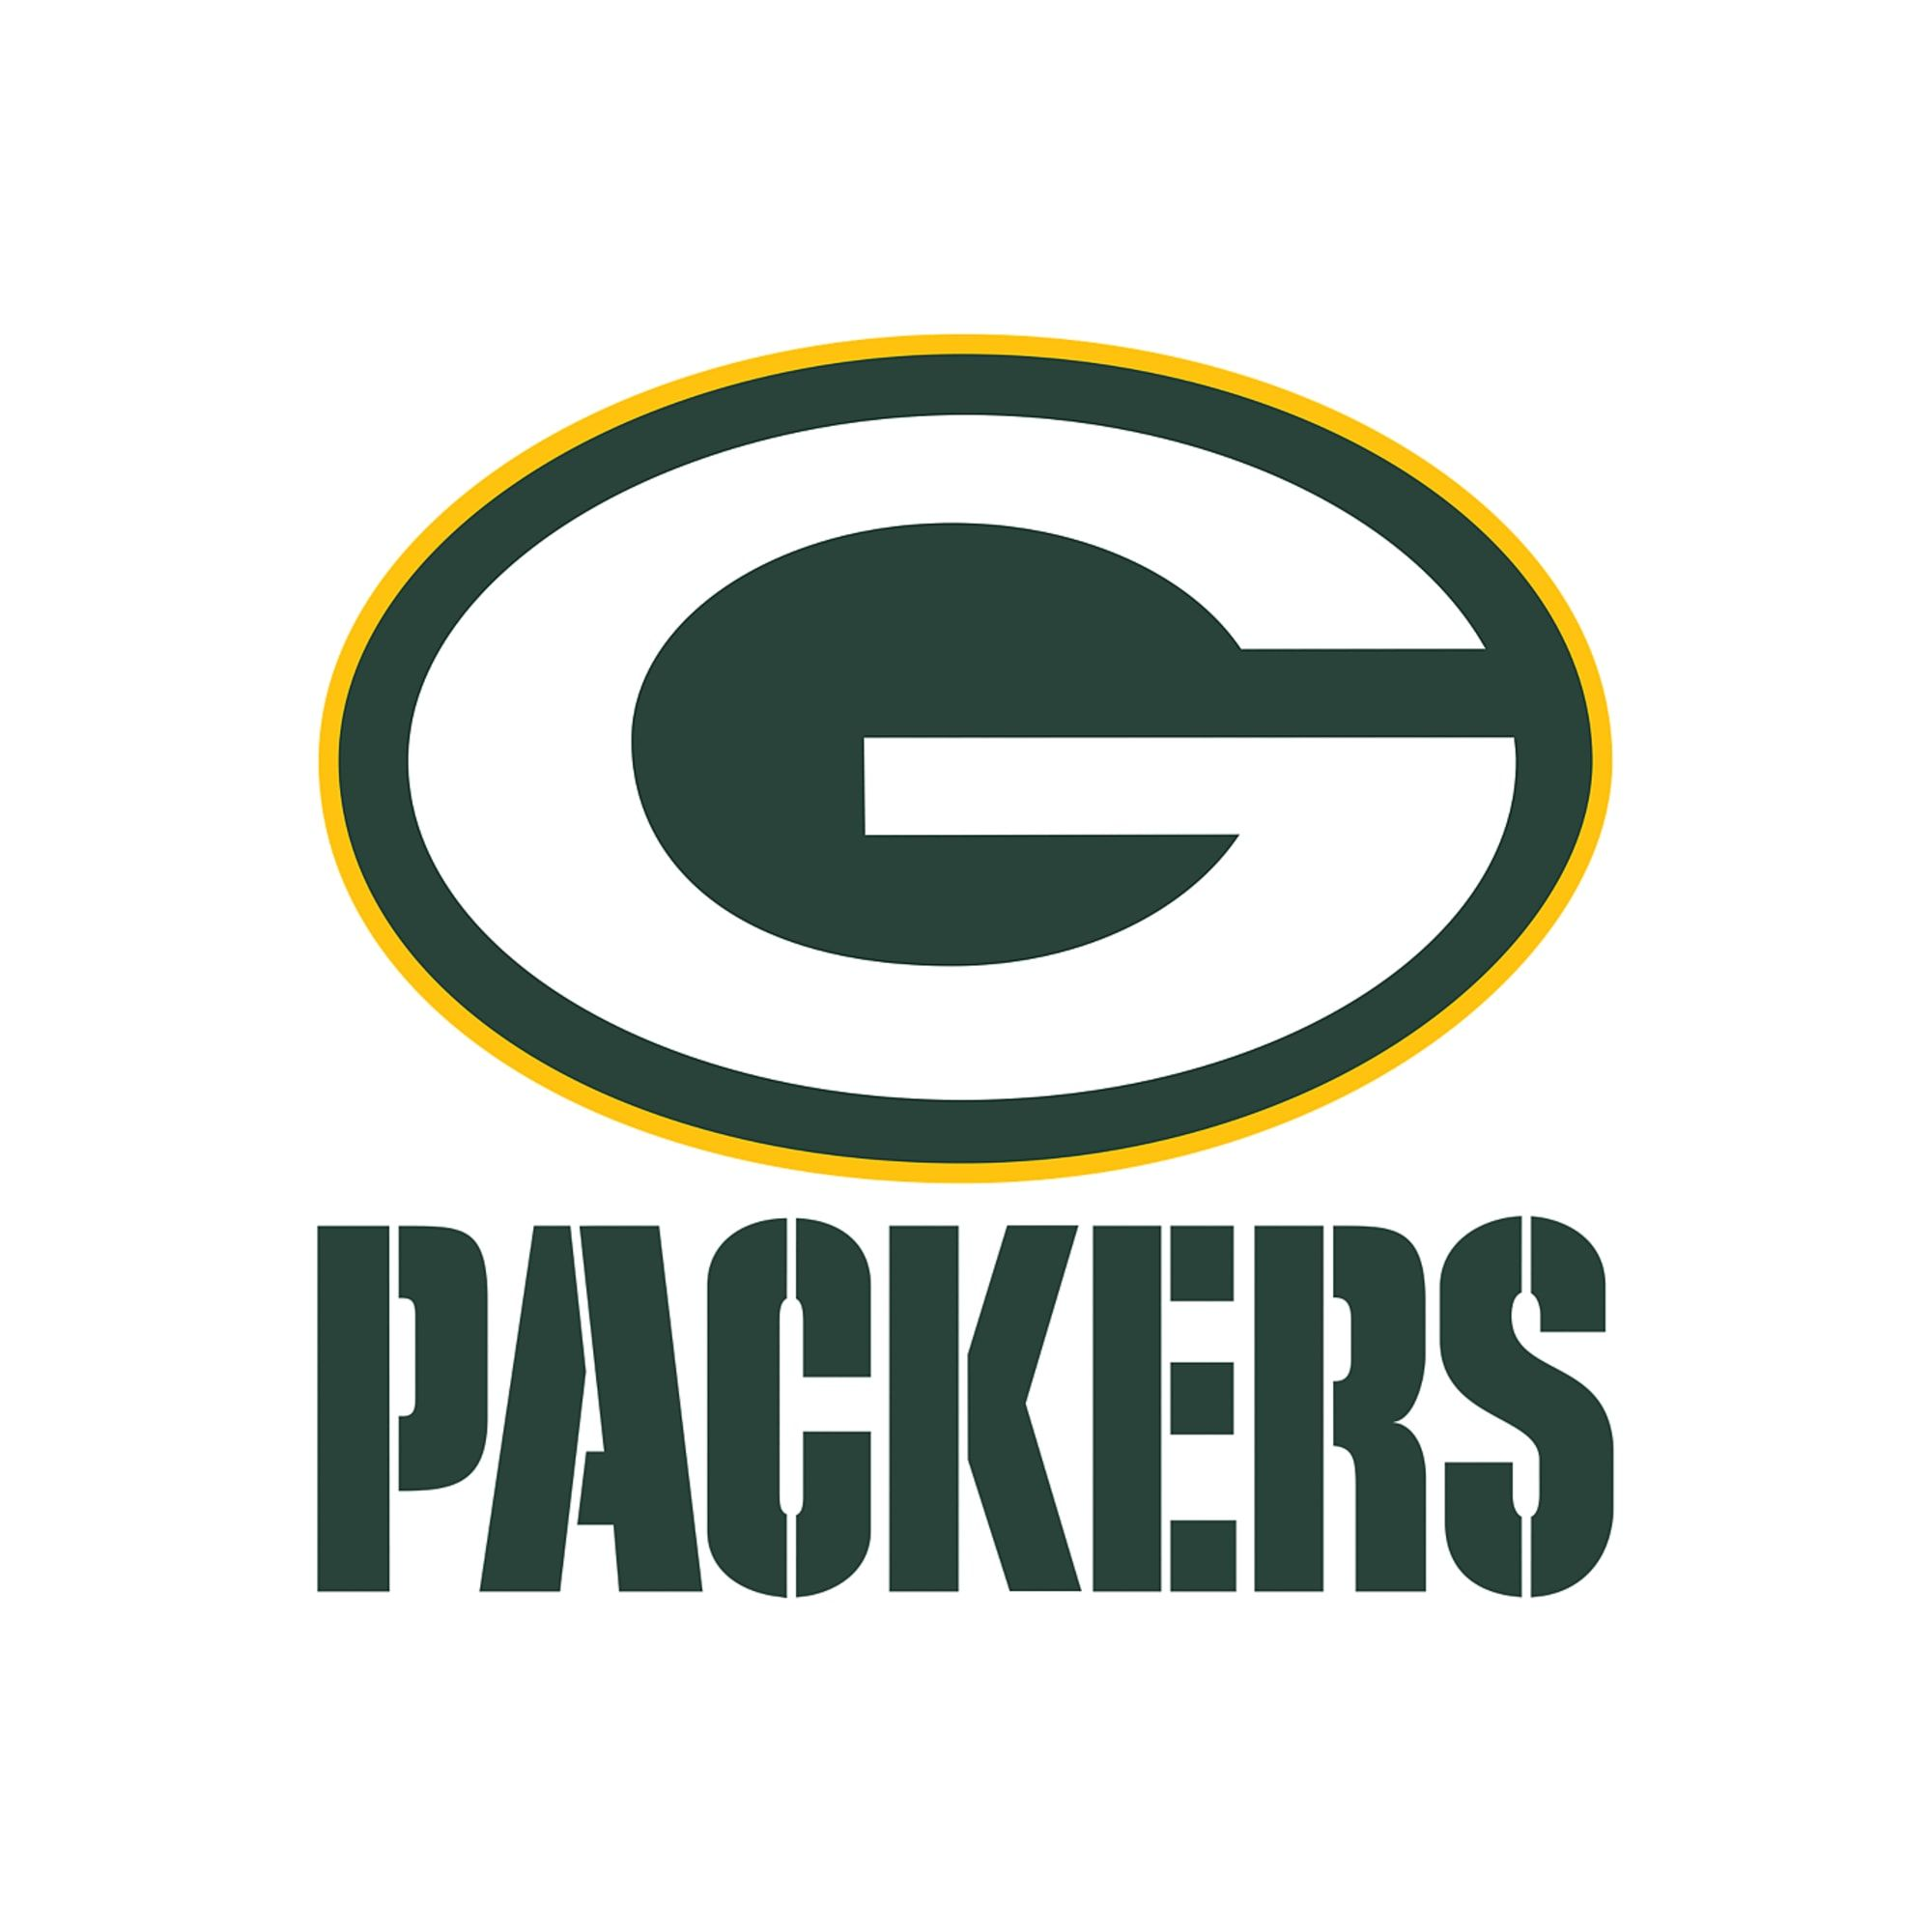 Green Bay Packers Logo Officially Licensed Nfl Transfer Decal Green Bay Packers Logo Green Bay Packers Packers